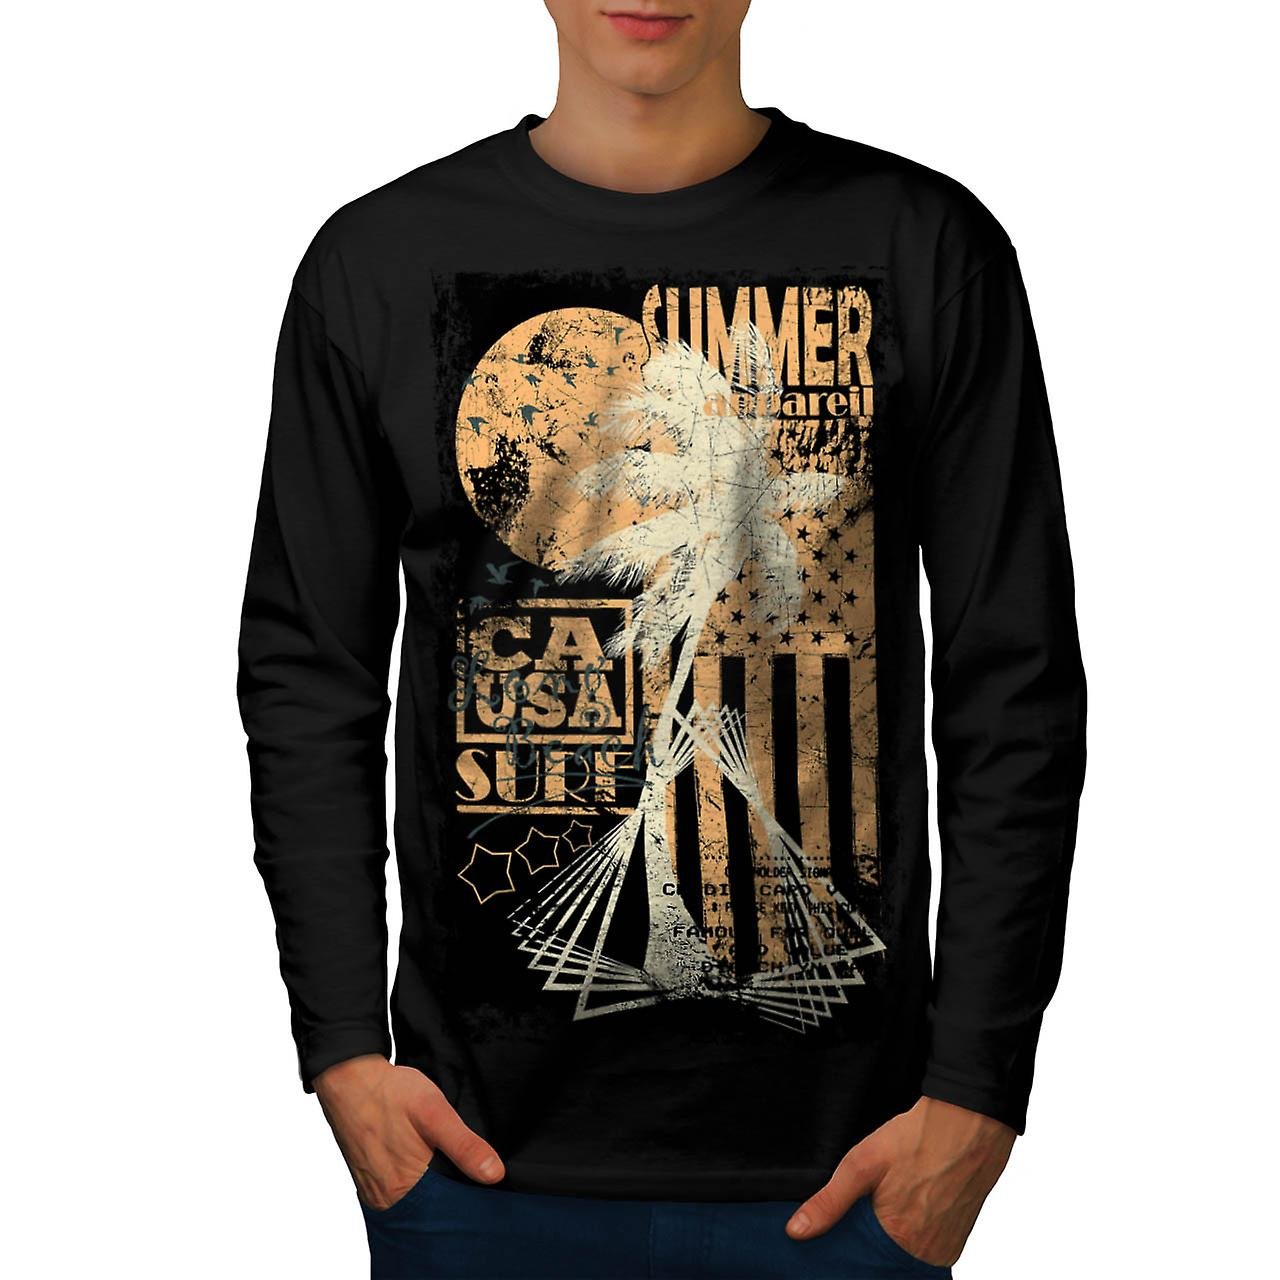 Summer Surfer Apparel California Men Black Long Sleeve T-shirt | Wellcoda